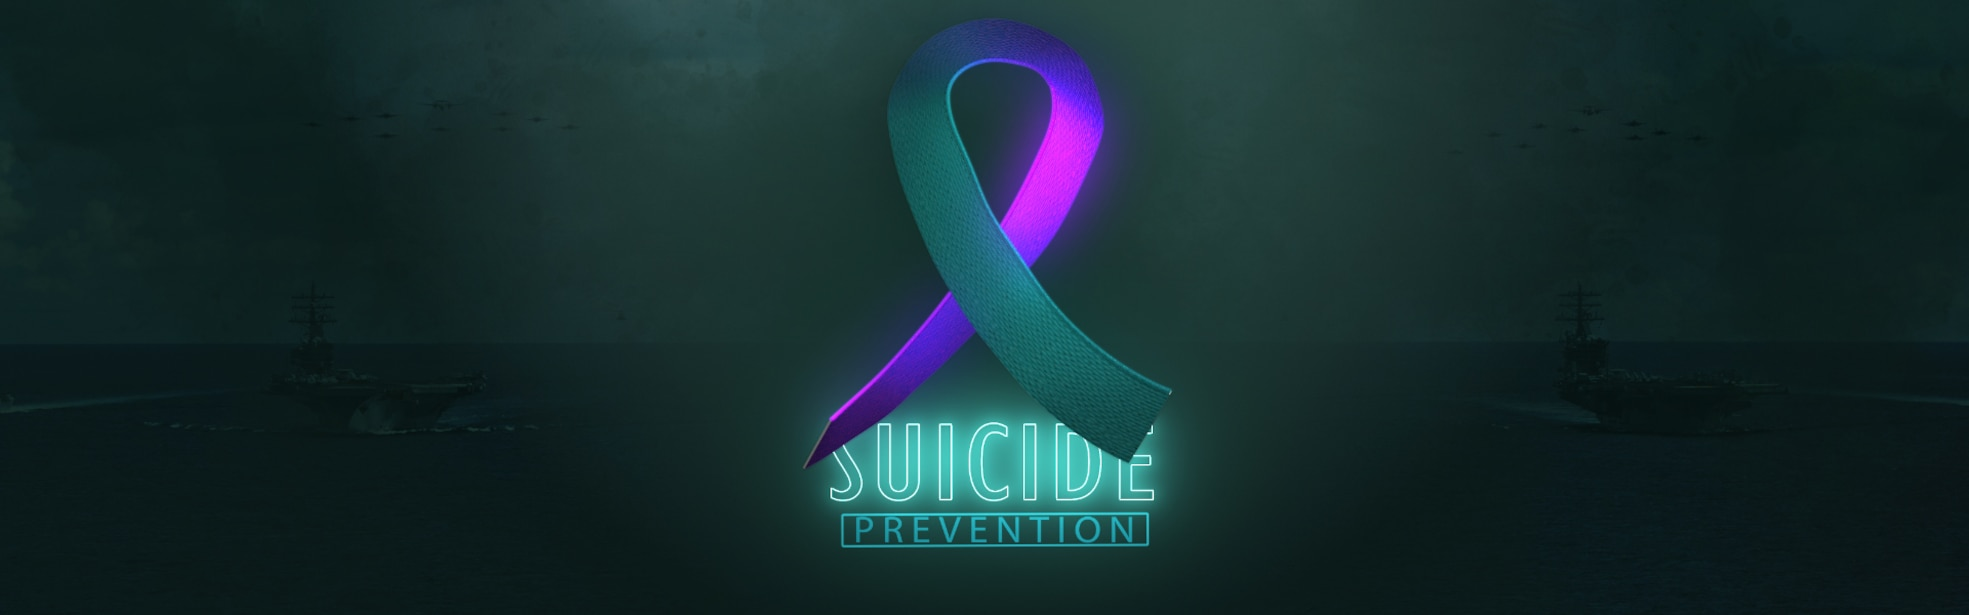 "Teal and purple 3-D ribbon superimposed over the words ""Suicide Prevention"""